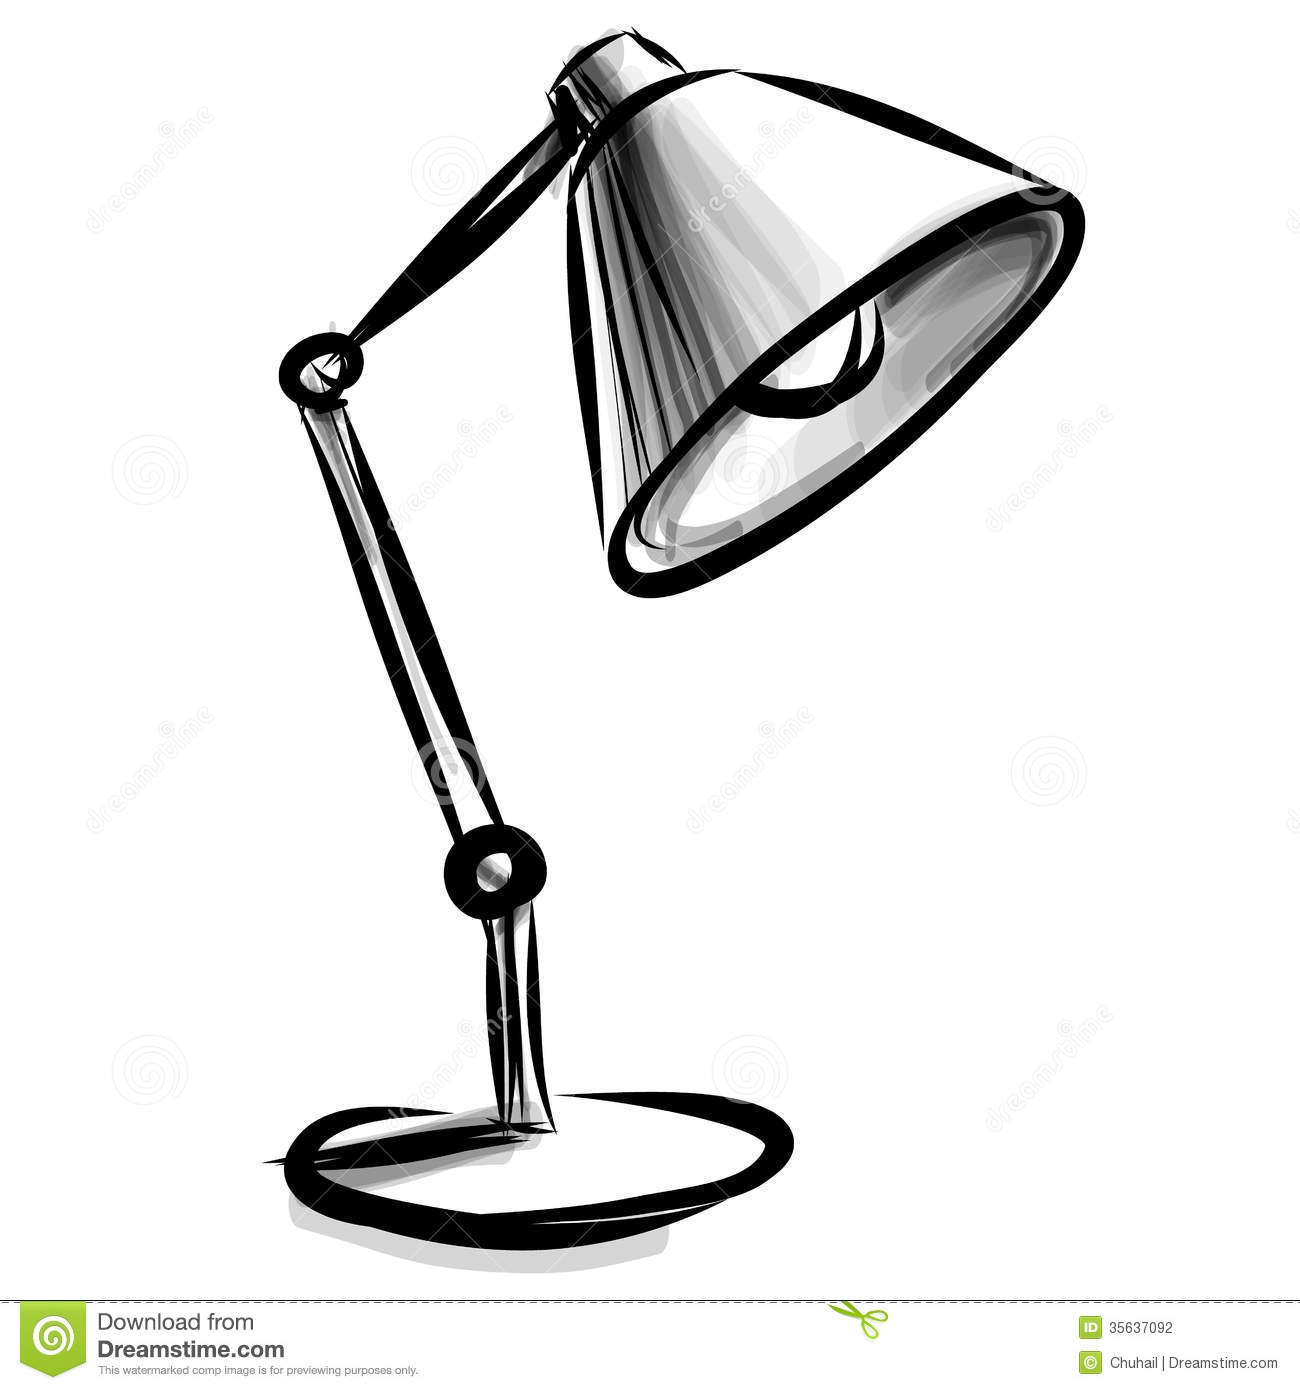 Desk lamp clipart - Clipground for Desk Lamp Clipart  59nar